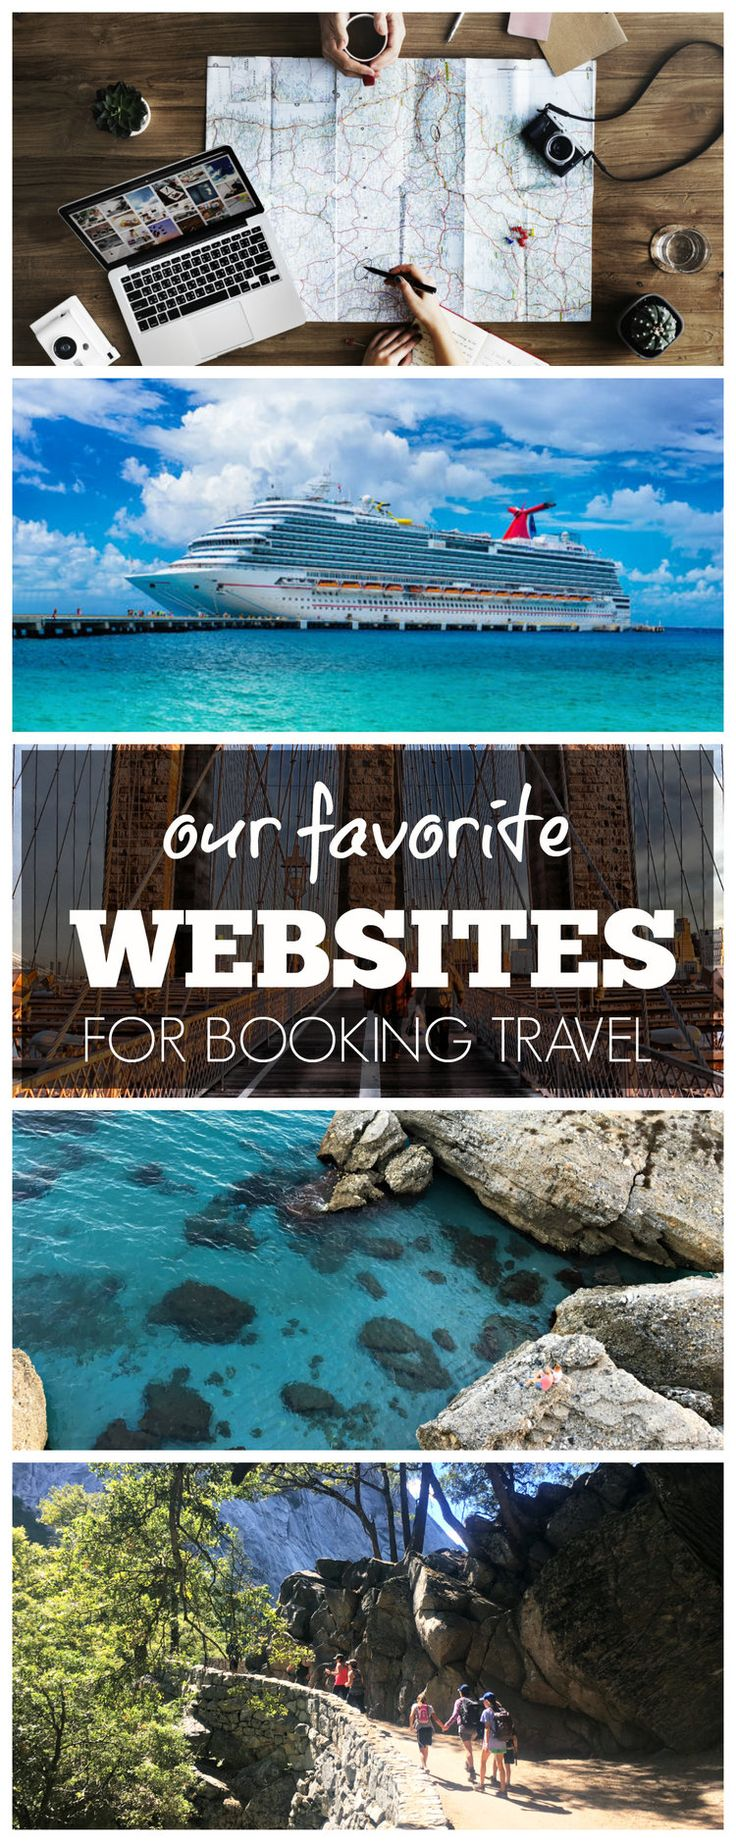 The best online vacation booking sites when it comes to planning family travel online. Last-minute deals, flash sales, cruises, packages, flights, hotels, car rentals and more.